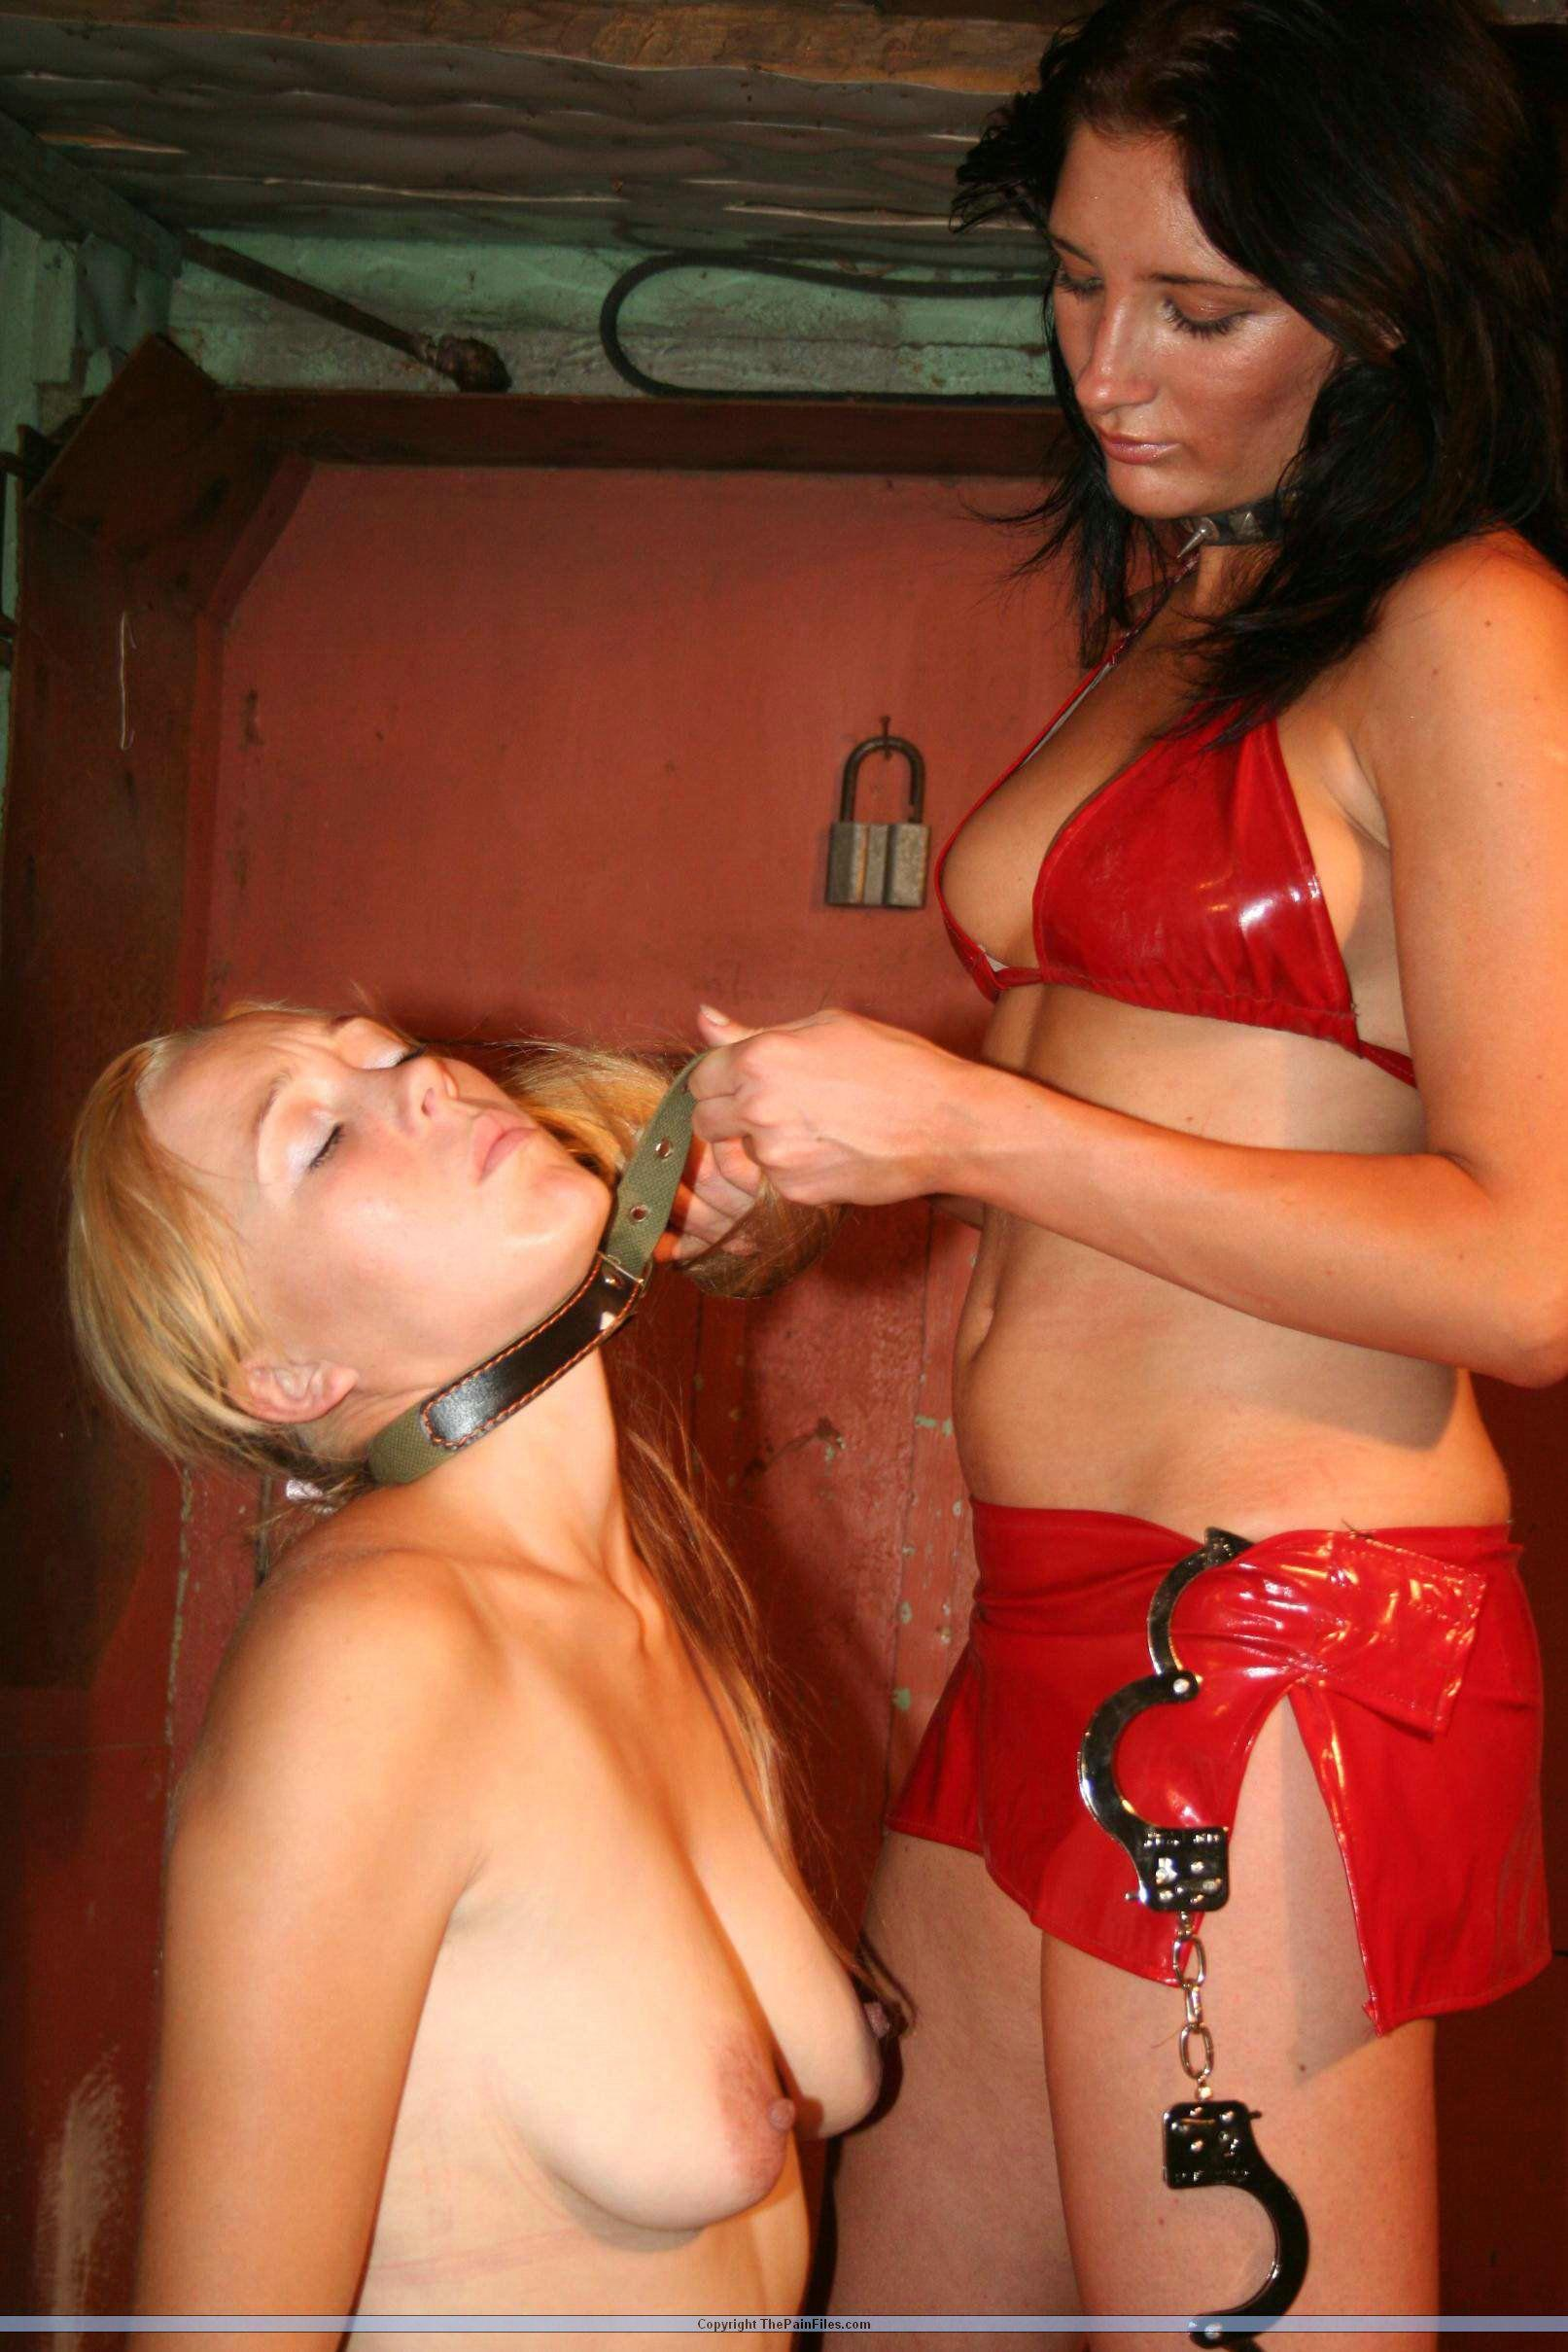 Domination sado sex story - Hot Nude. Comments: 5